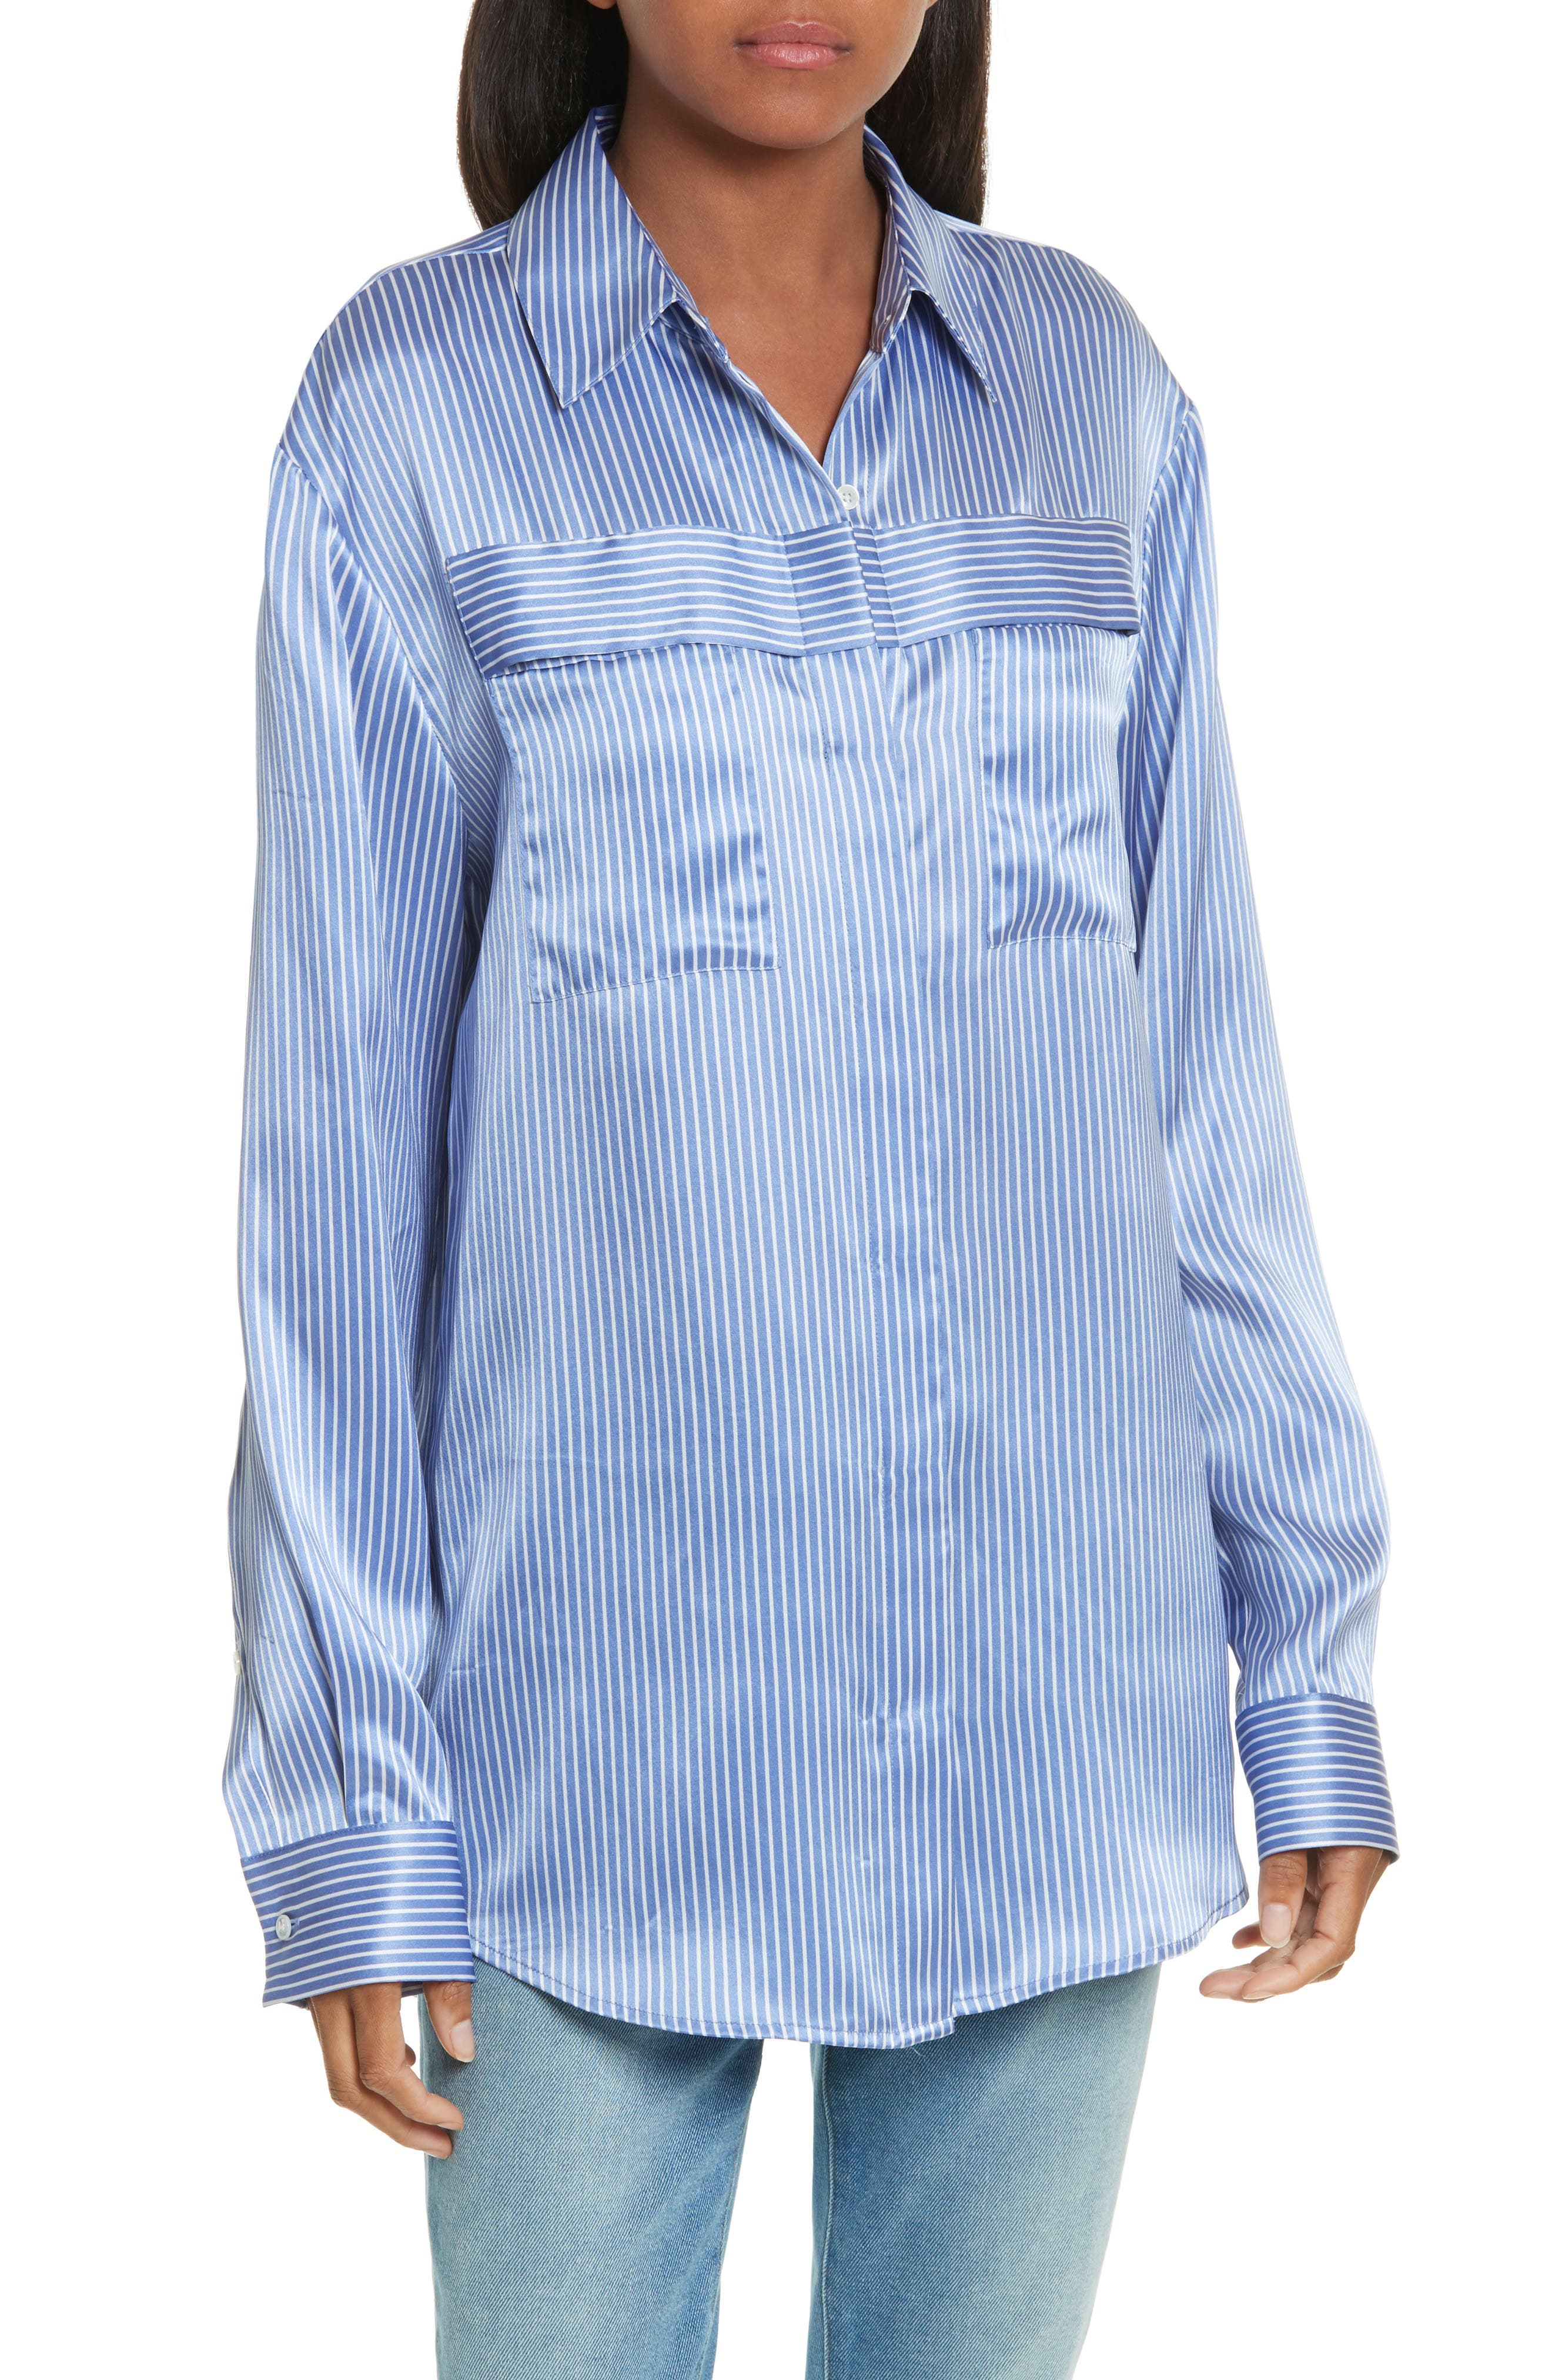 Silk Satin Blouse,                             Main thumbnail 1, color,                             Washed Whale With White Stripe